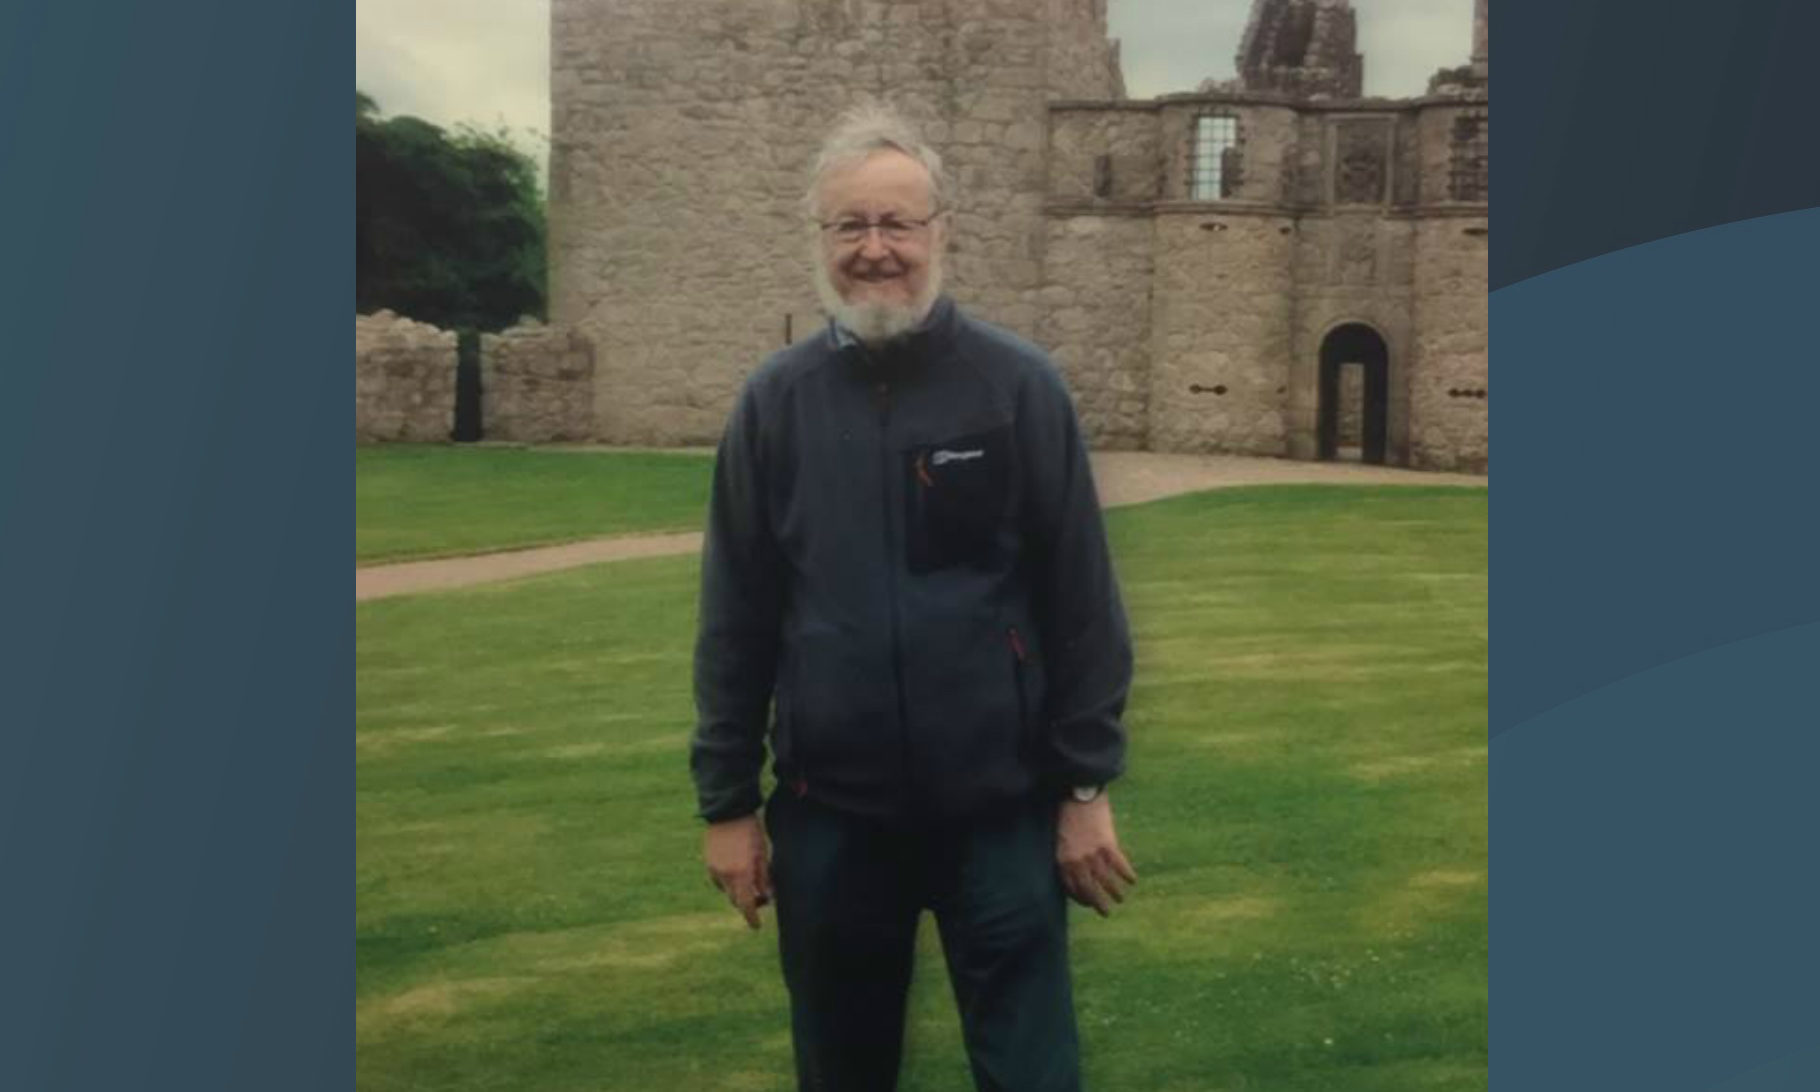 Police confirmed a body found as Richard Foster